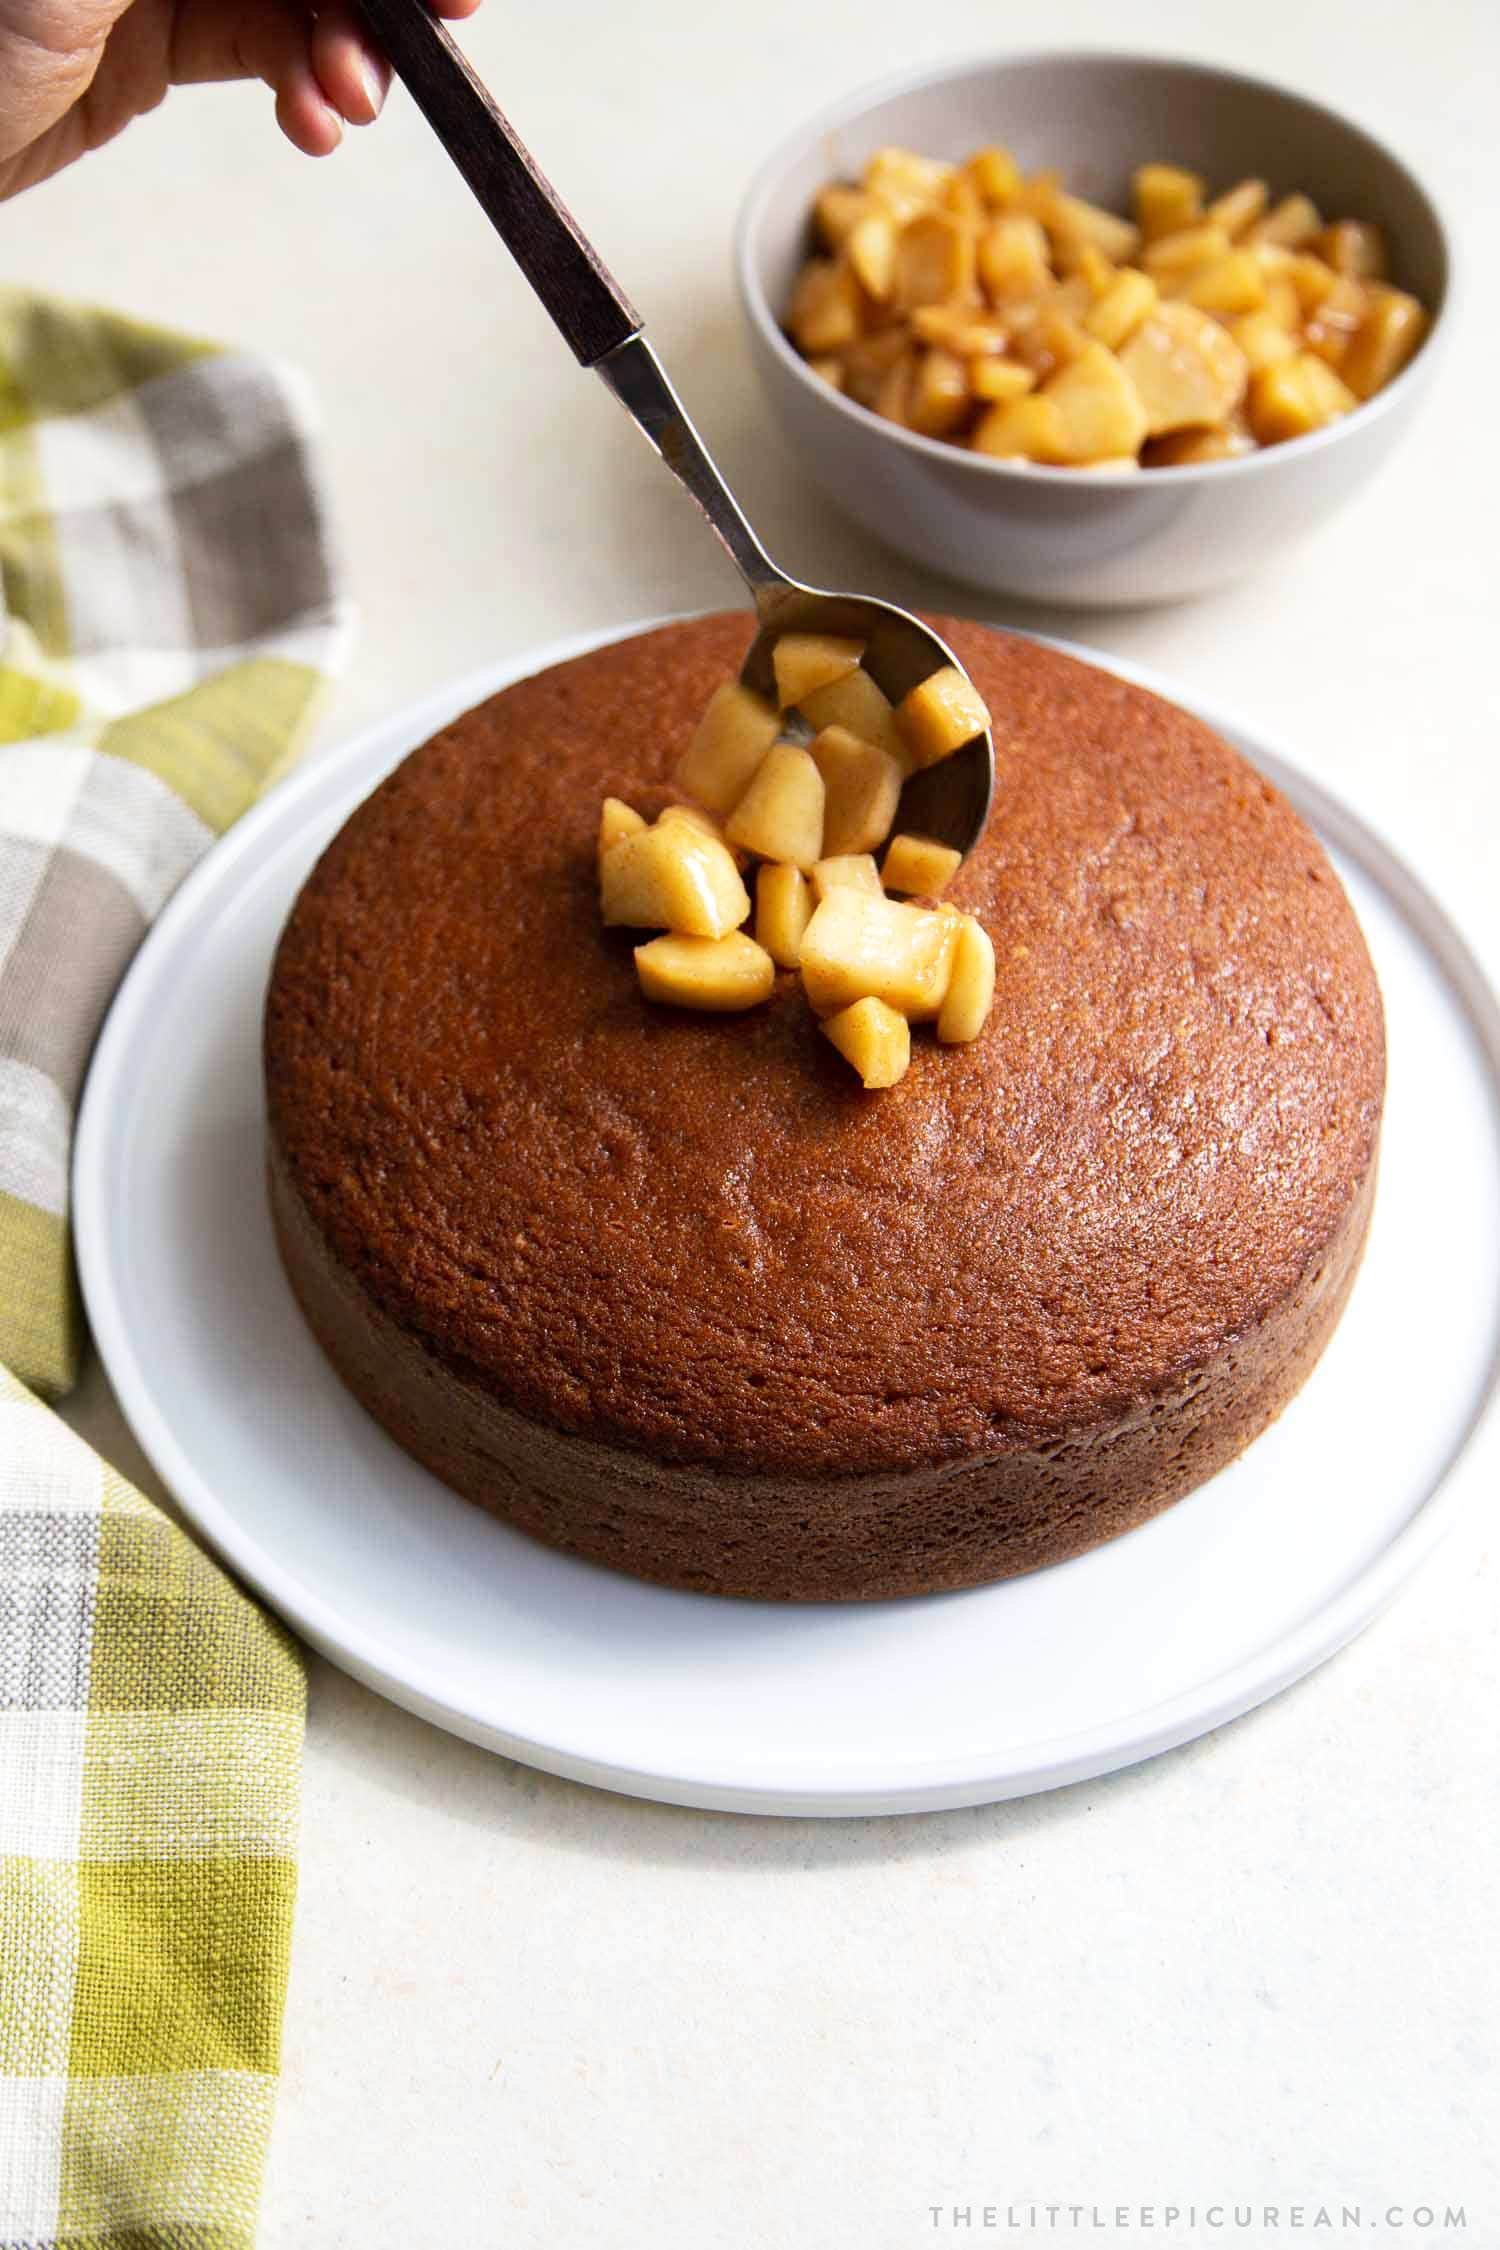 Ginger cake topped with ginger spiced apples and caramel